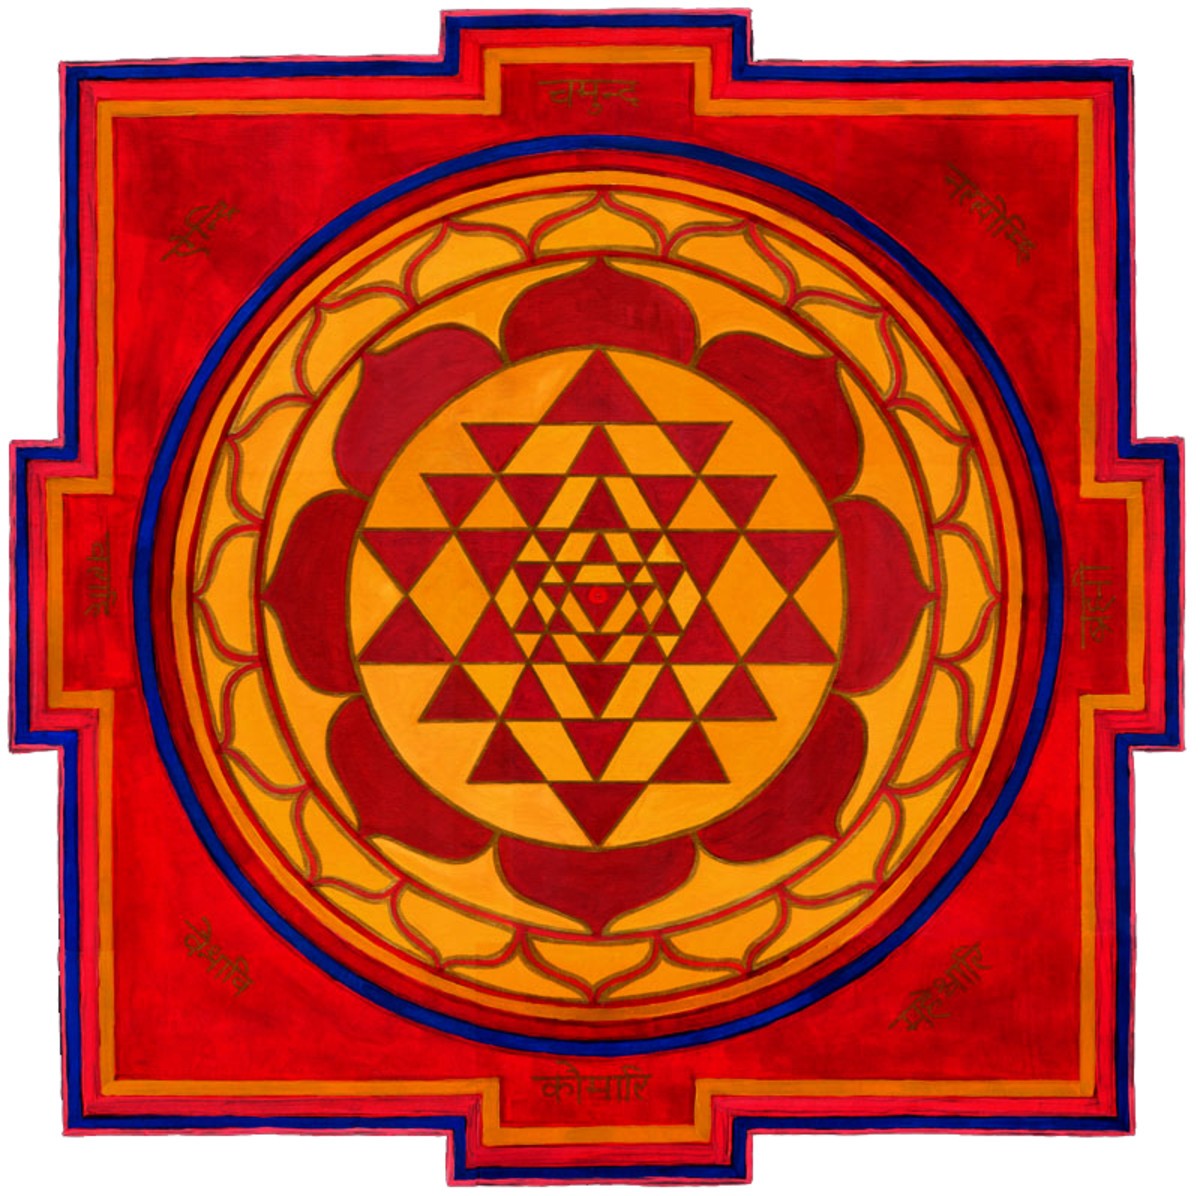 The classic image of the Sri Yantra, symbolizing the power of the Divine Feminine in Tantra